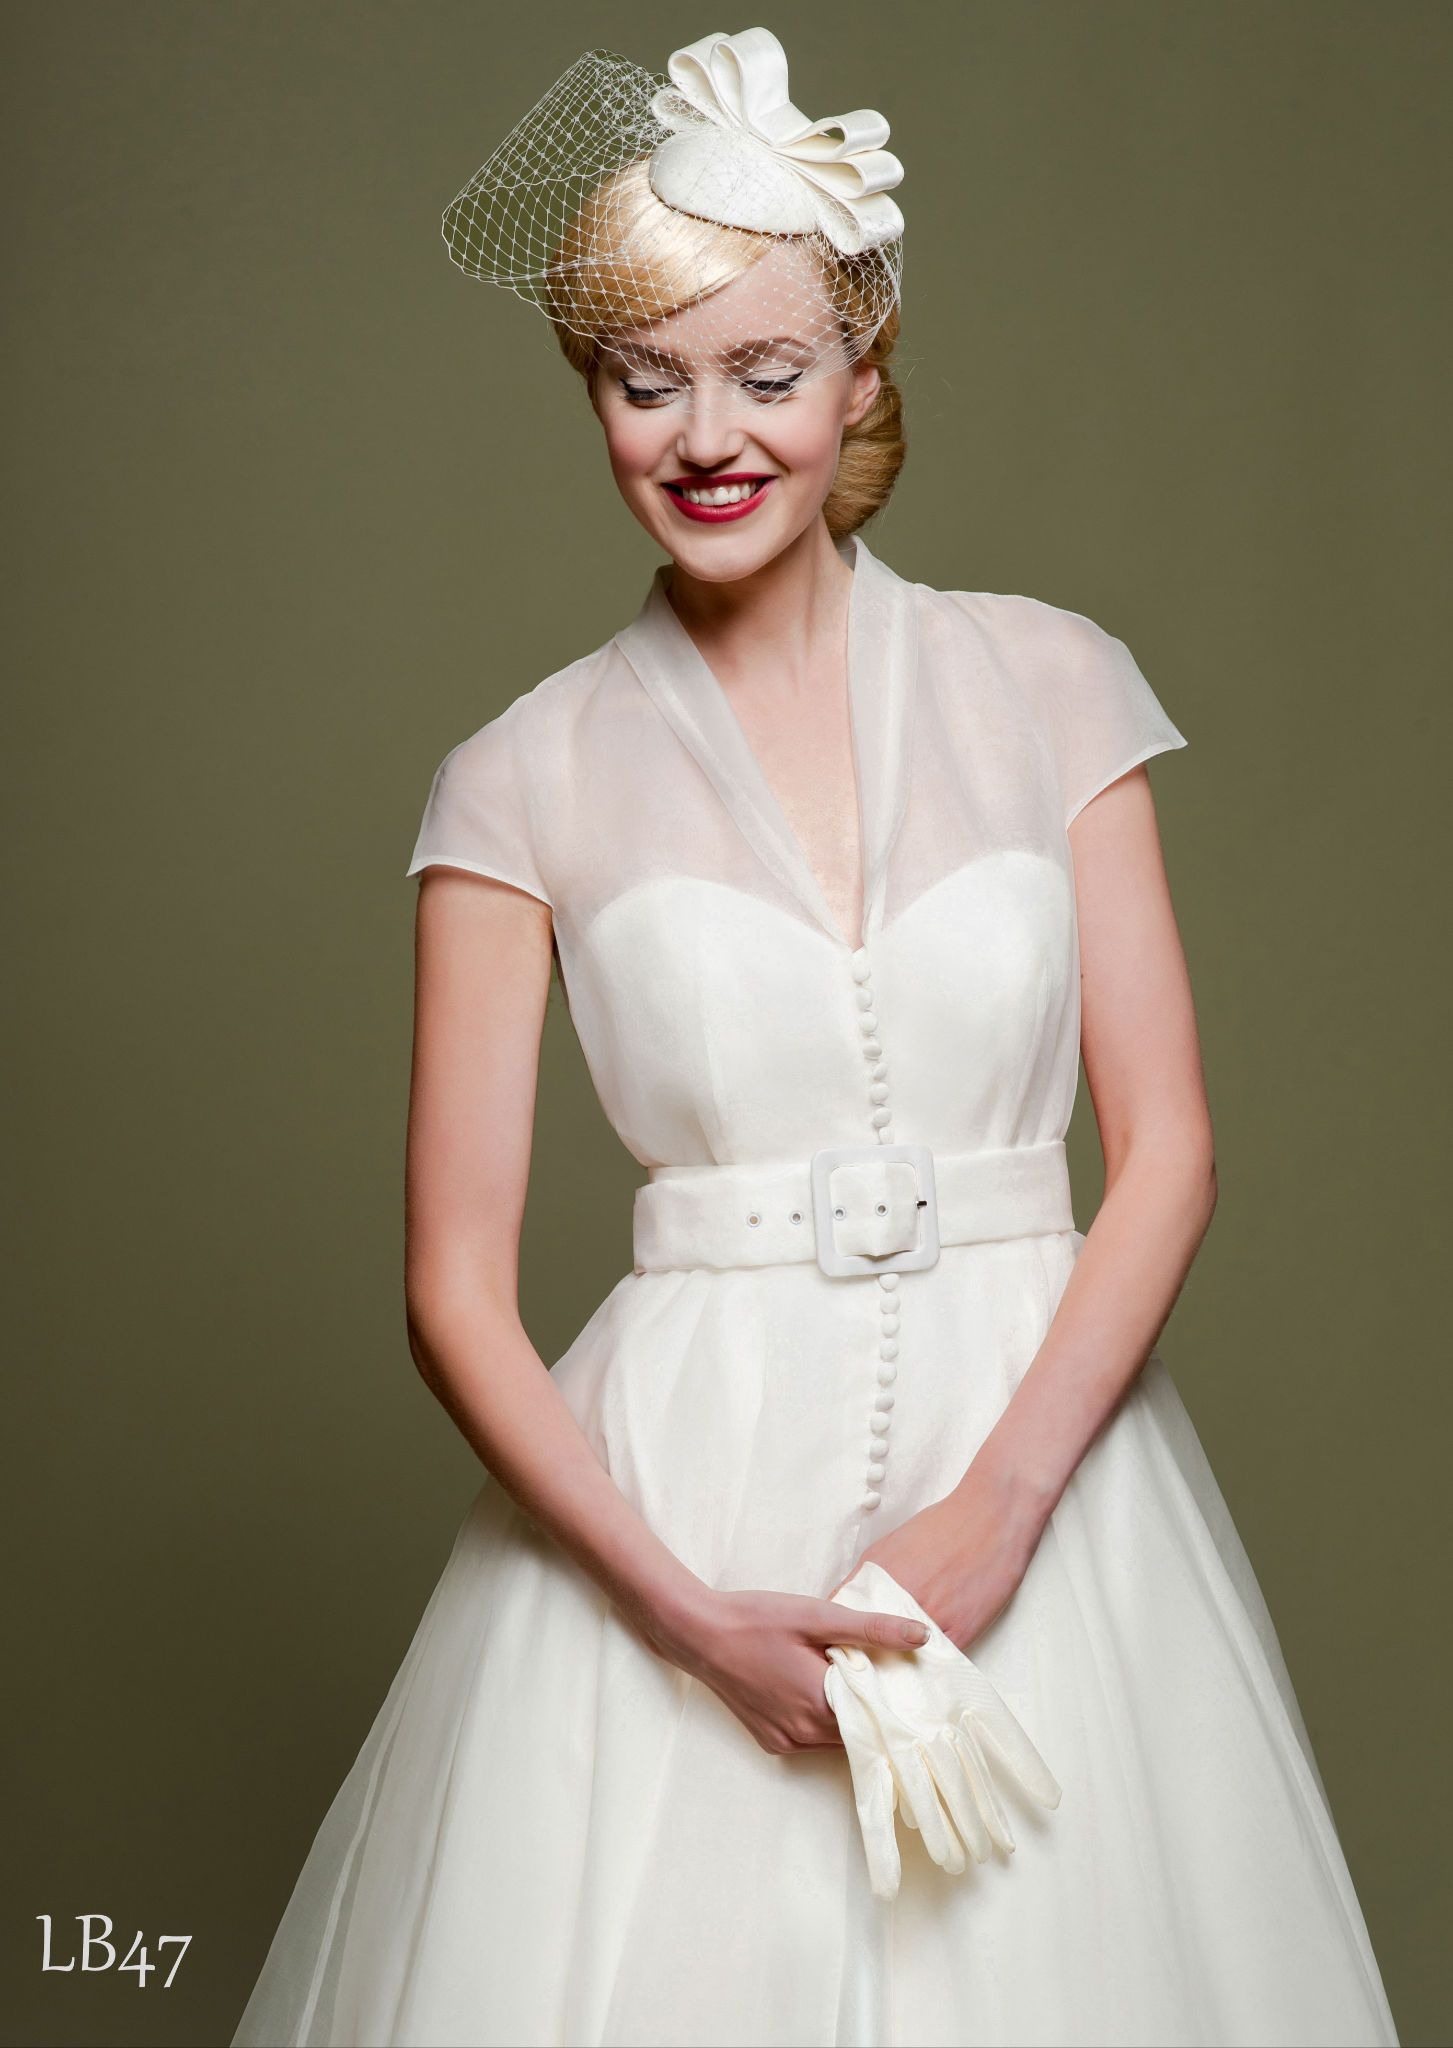 S style wedding dresses us style bridal dress and tea party